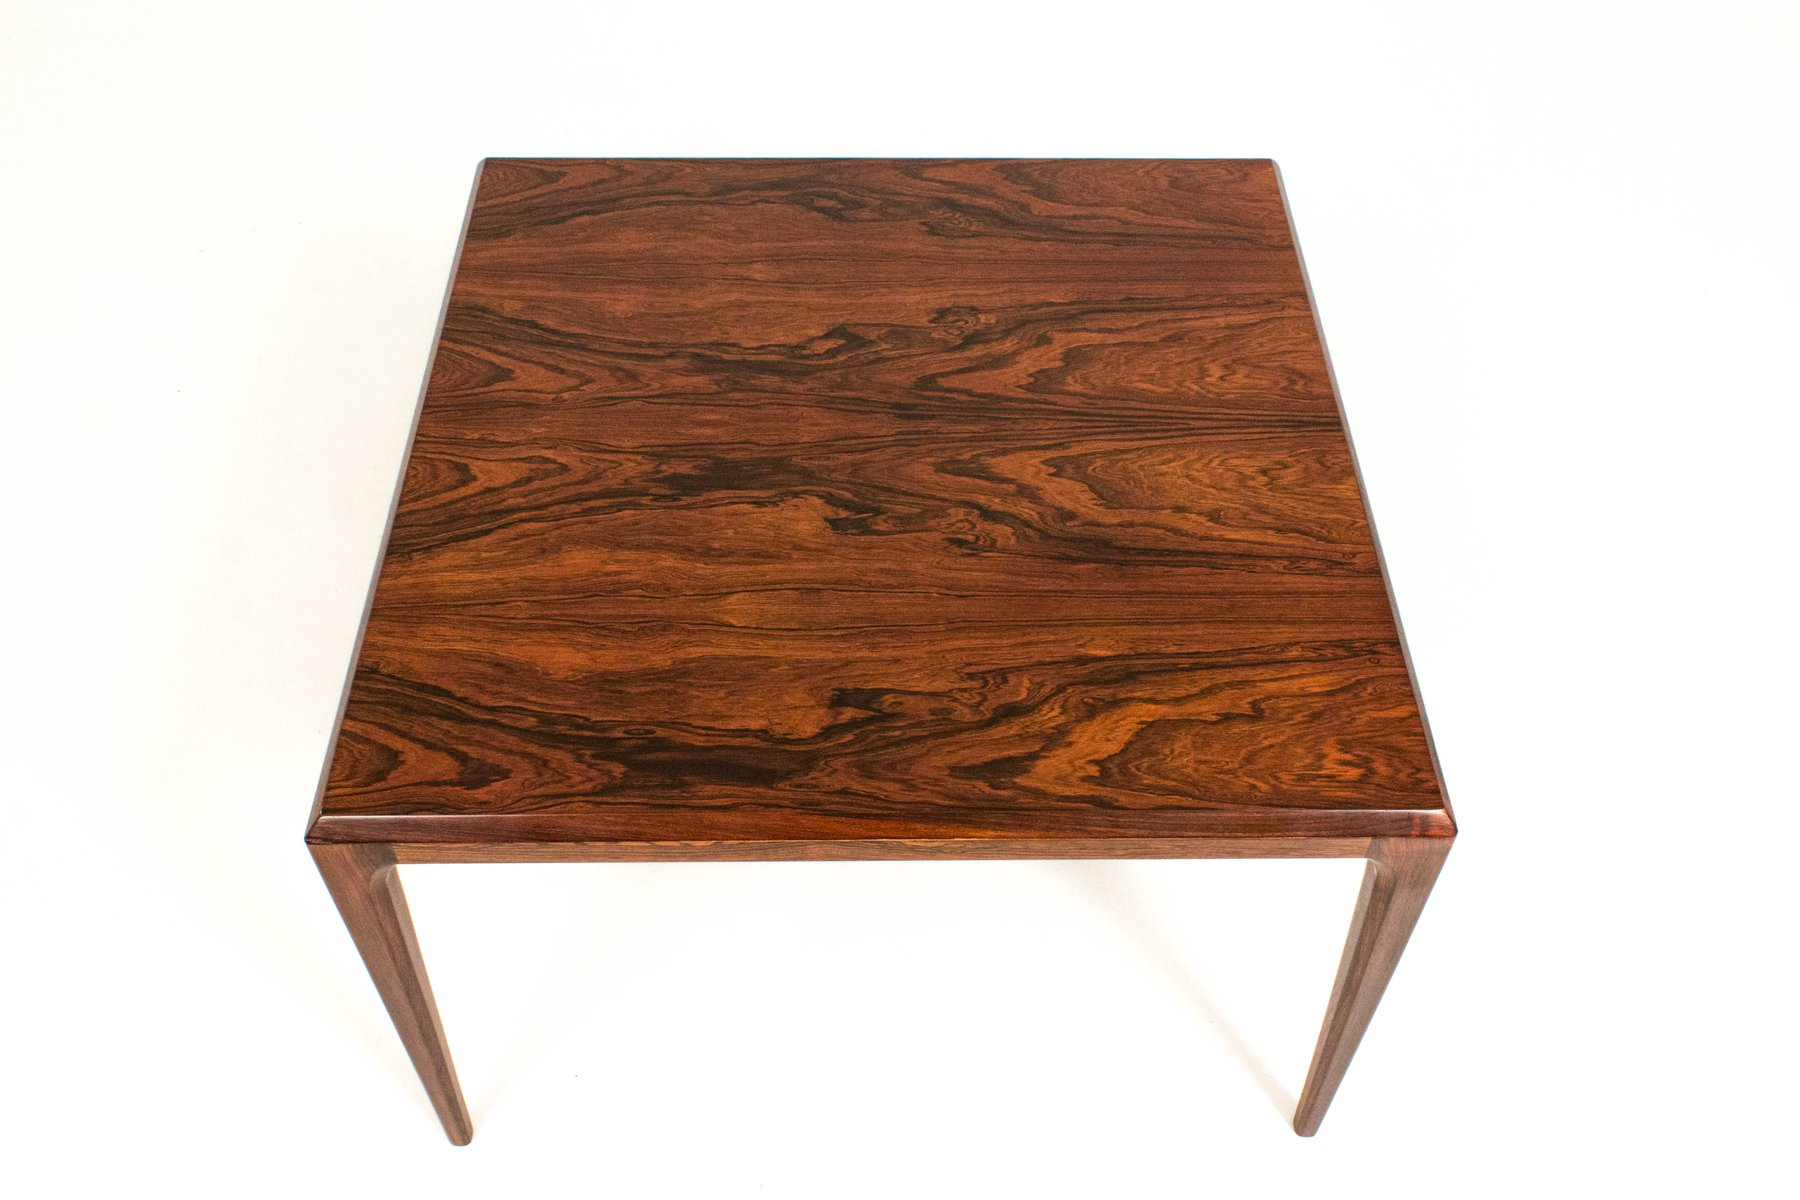 Danish Rosewood Coffee Table By Johannes Andersen For Silkeborg, 1960s